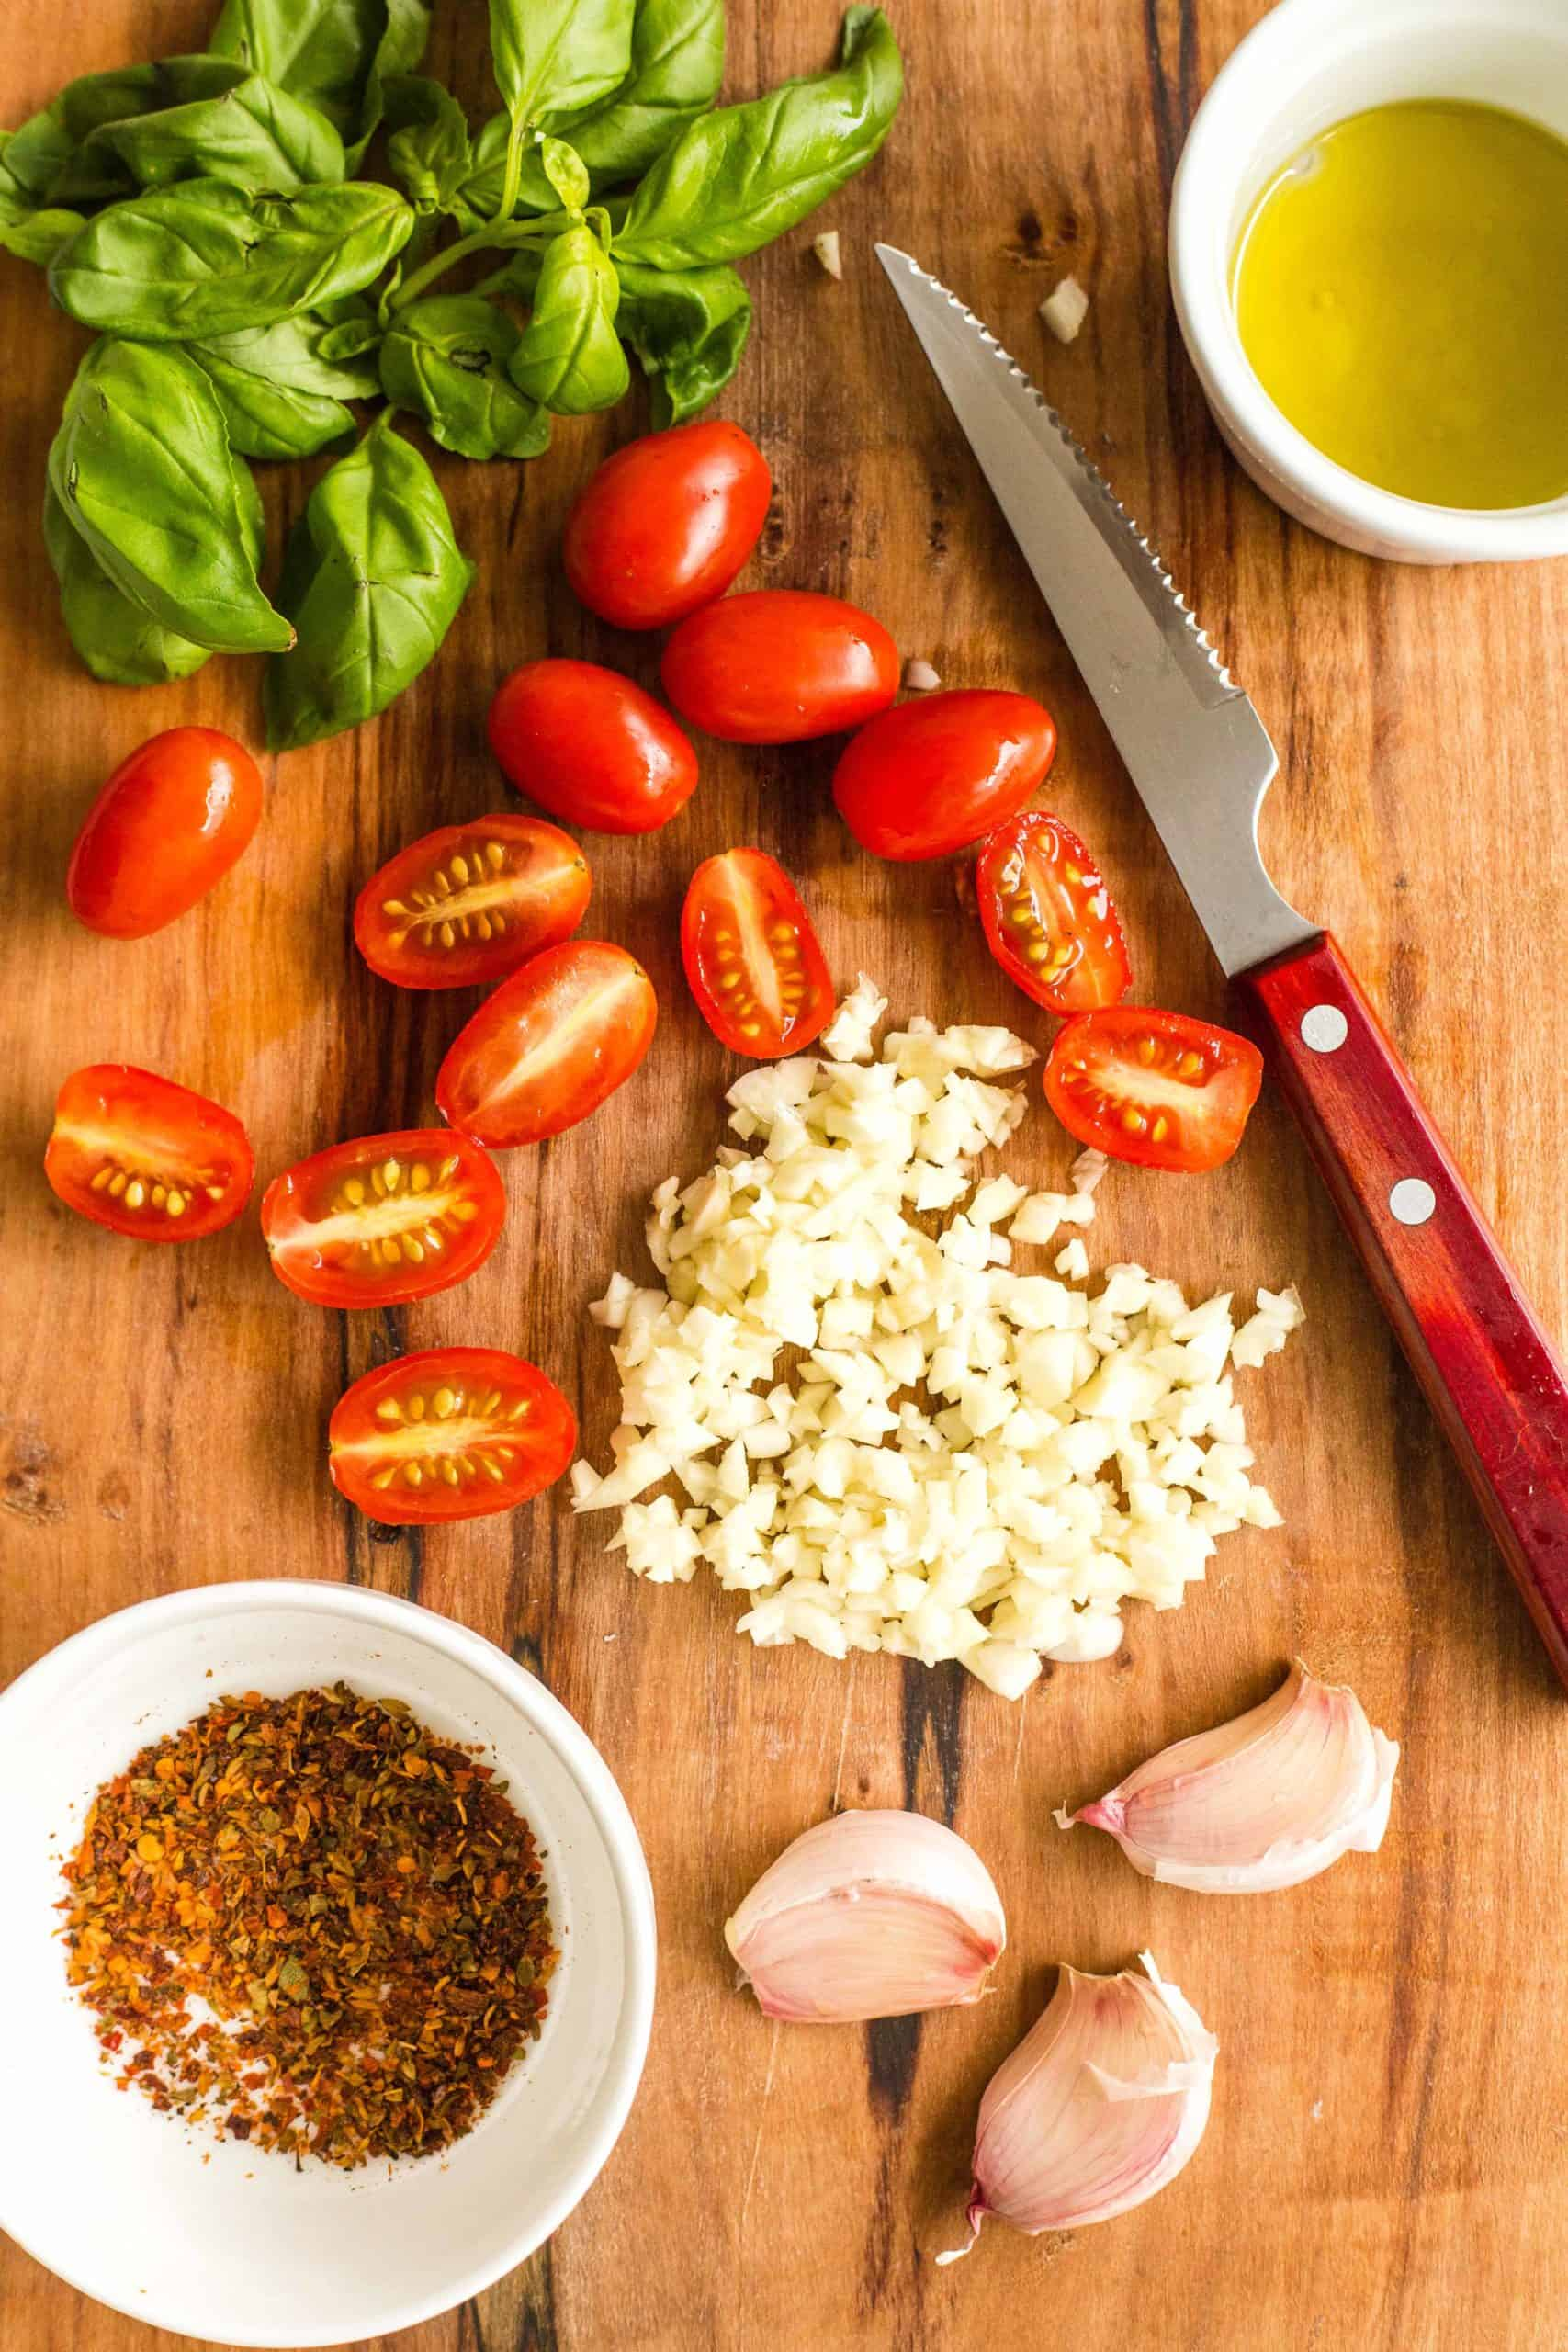 Preparing the topping ingredients for caprese pizza - basil leaves, cherry tomatoes, minced garlic, red chili flakes, olive oil.